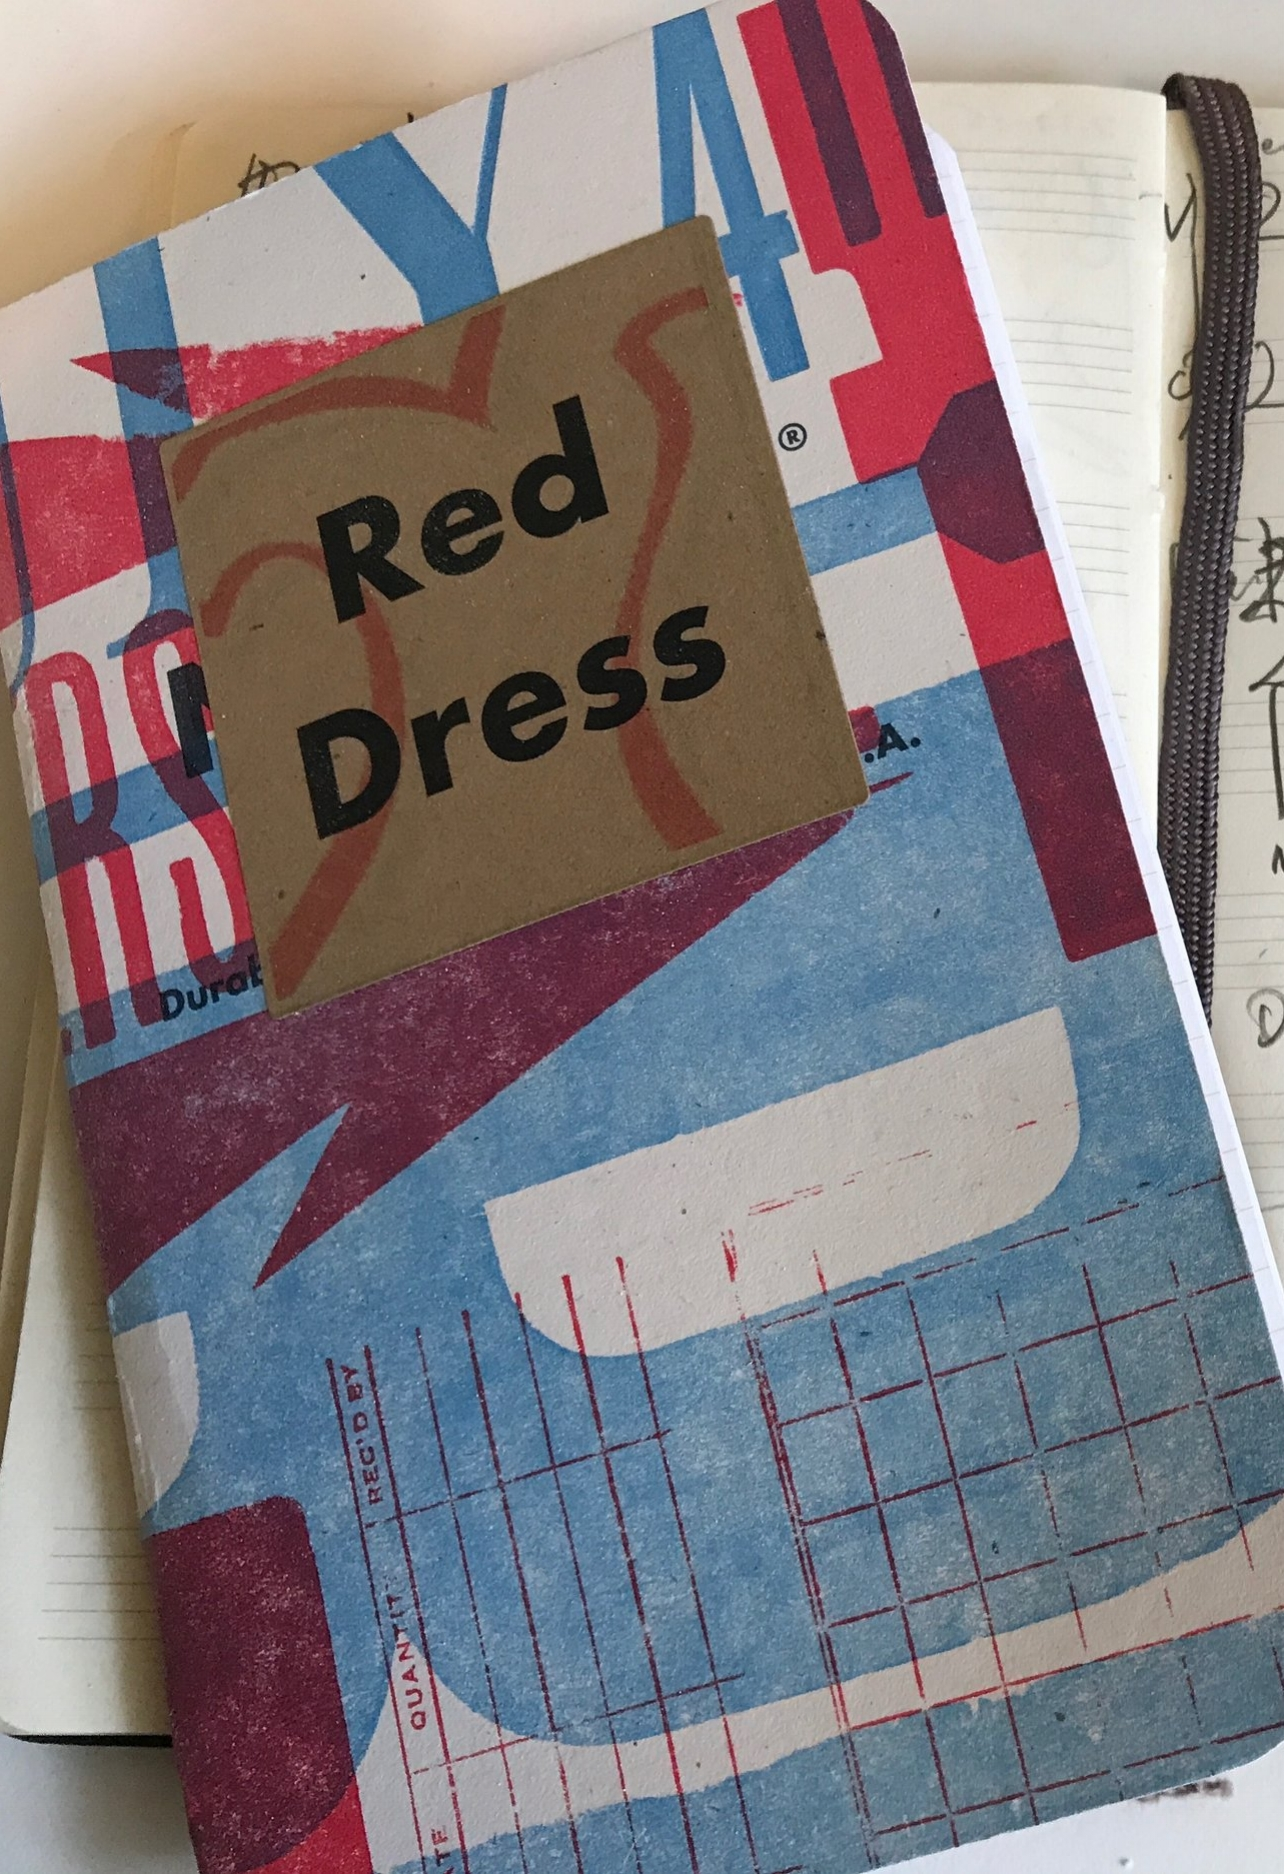 red dress waste book.jpg